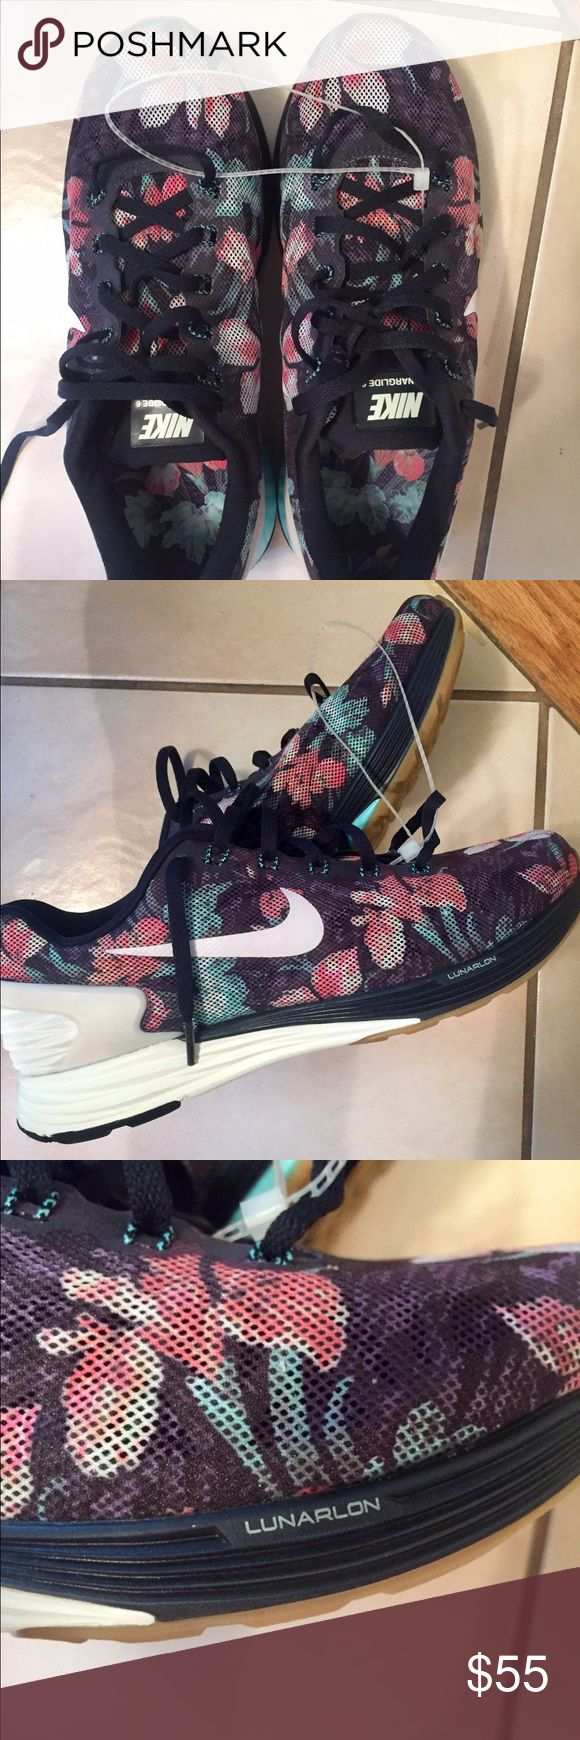 newest collection 15d88 9e452 Nike lunarglide 6 sneakers 7.5 NWT Nike Lunarglide 8 Oc, Chaussures de  Running Homme ...